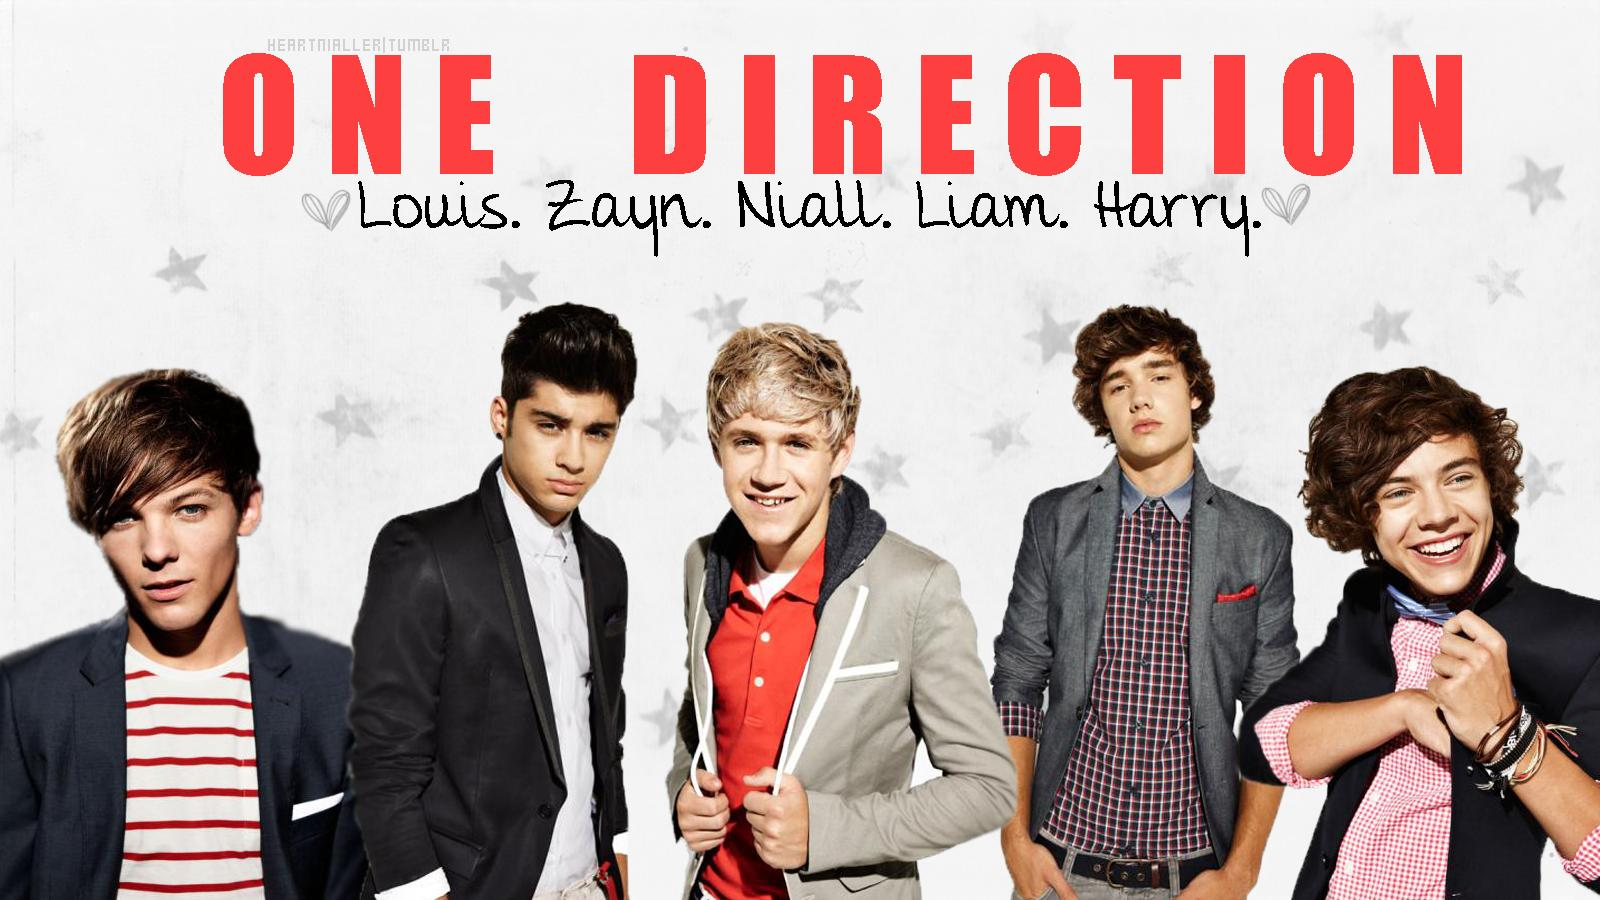 1D One Direction Wallpaper 24 18365 Images HD Wallpapers| Wallfoy.com